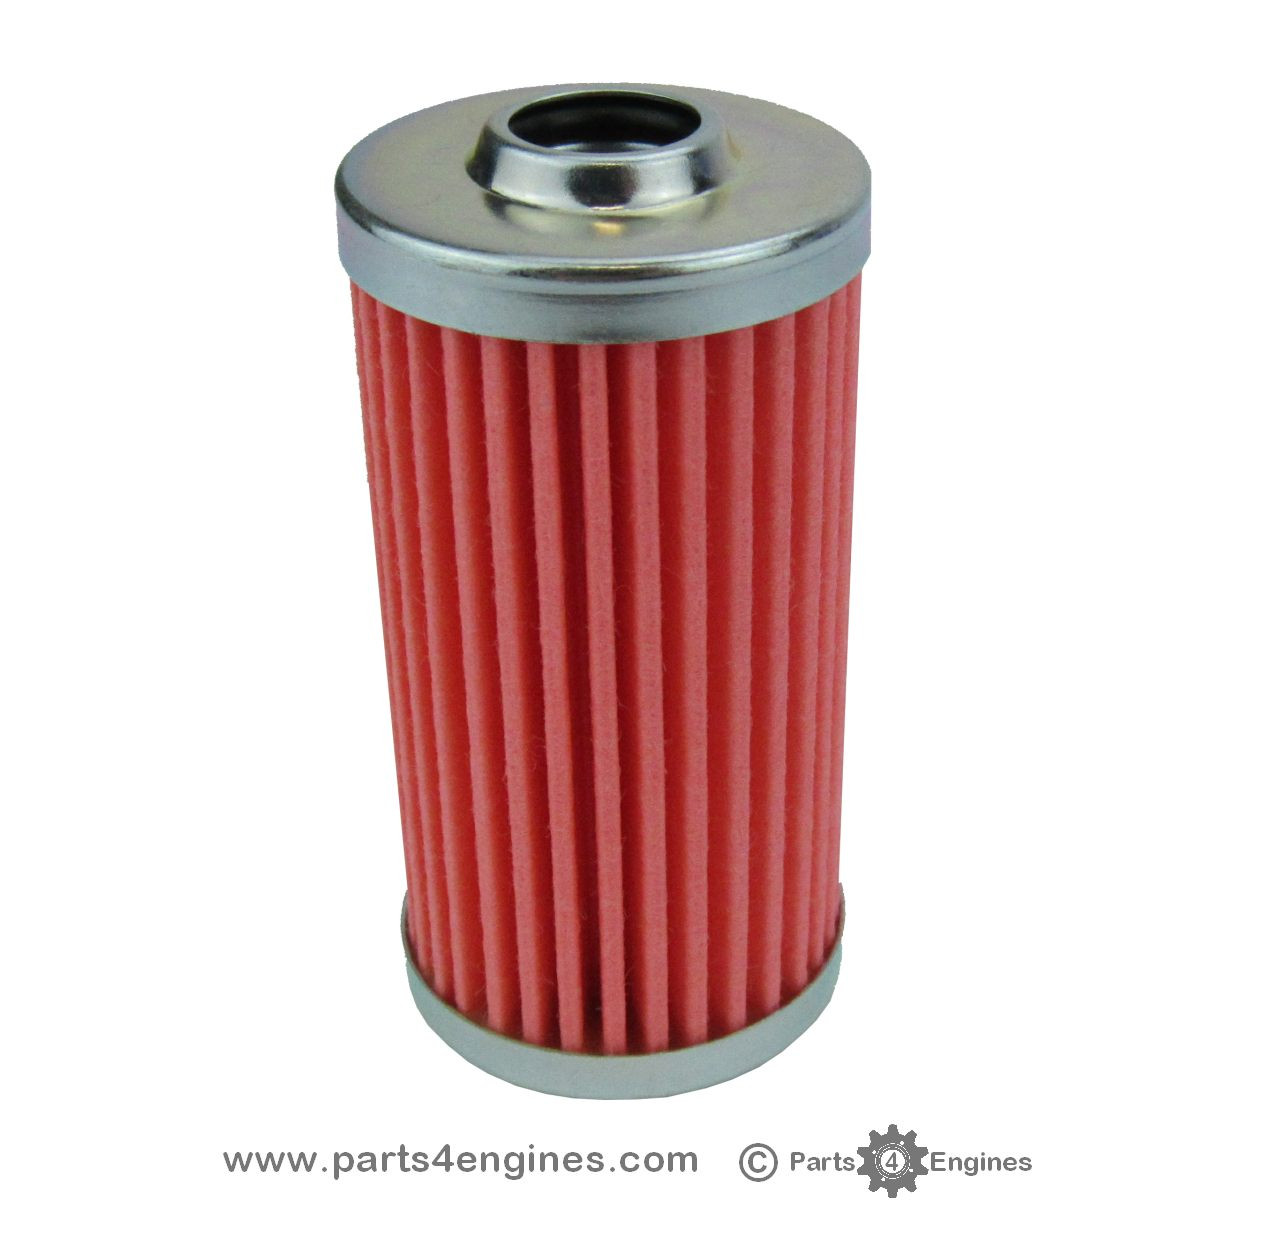 Yanmar 3QM30 Fuel Filter, from parts4engines.com